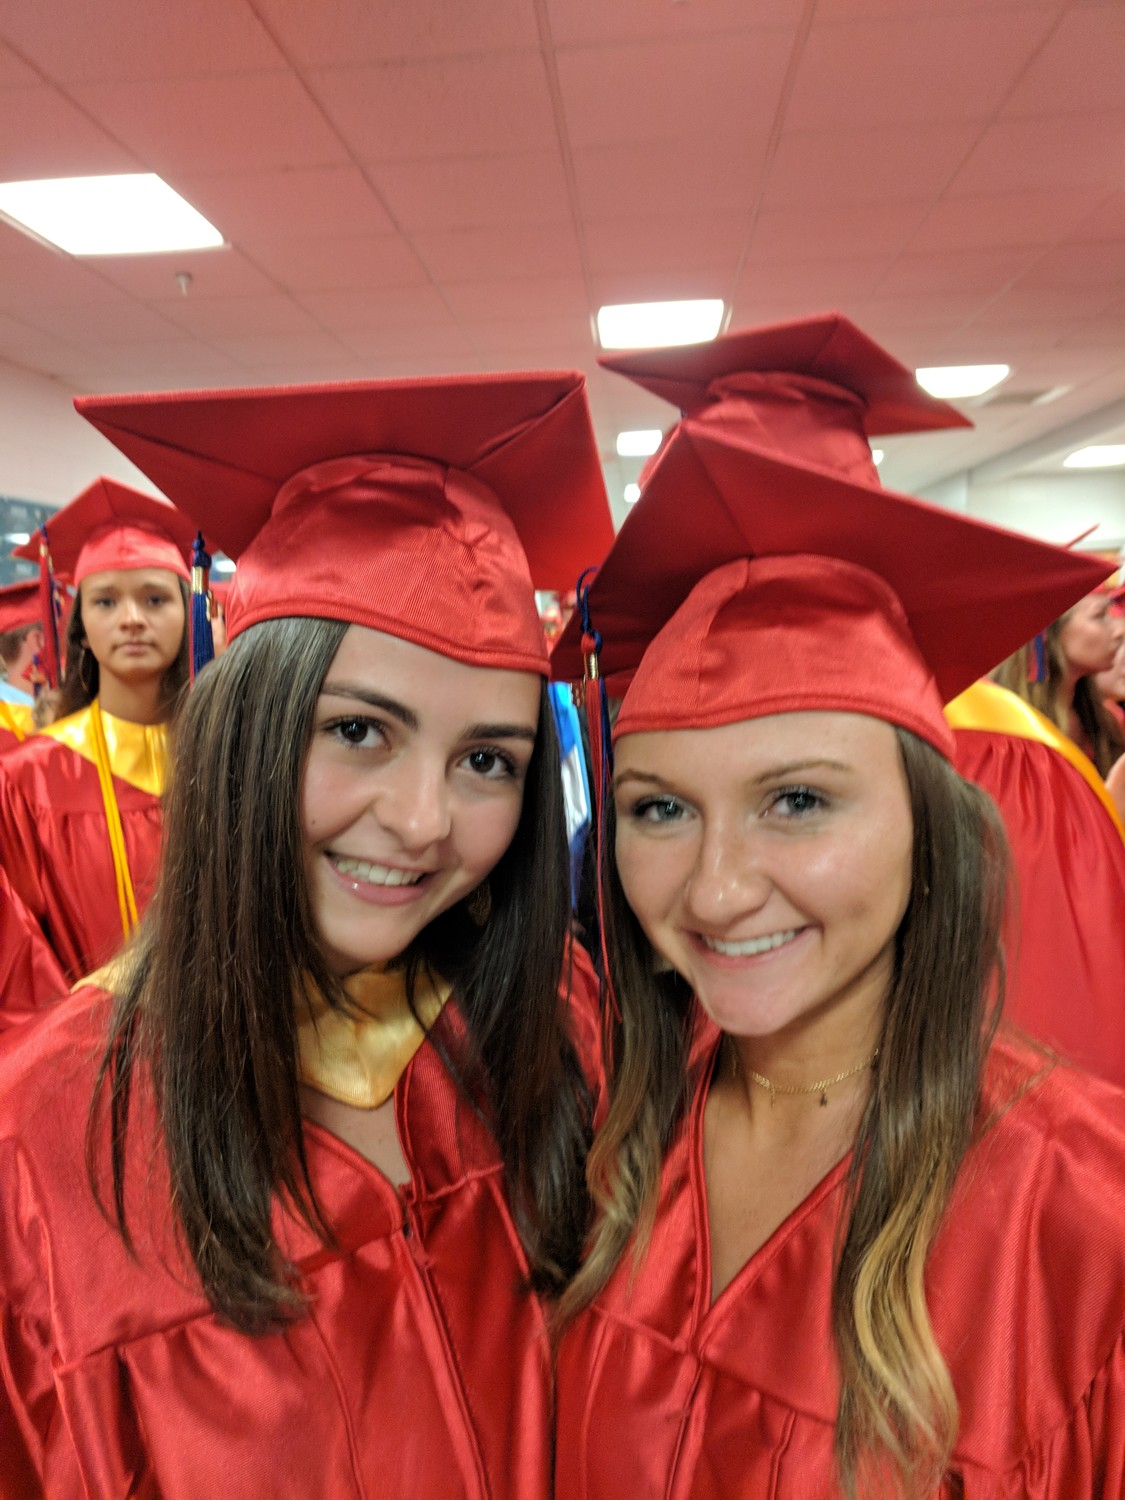 """South Side will always be home,"" Livia Kelly, left, said next to Morgan Kelly."